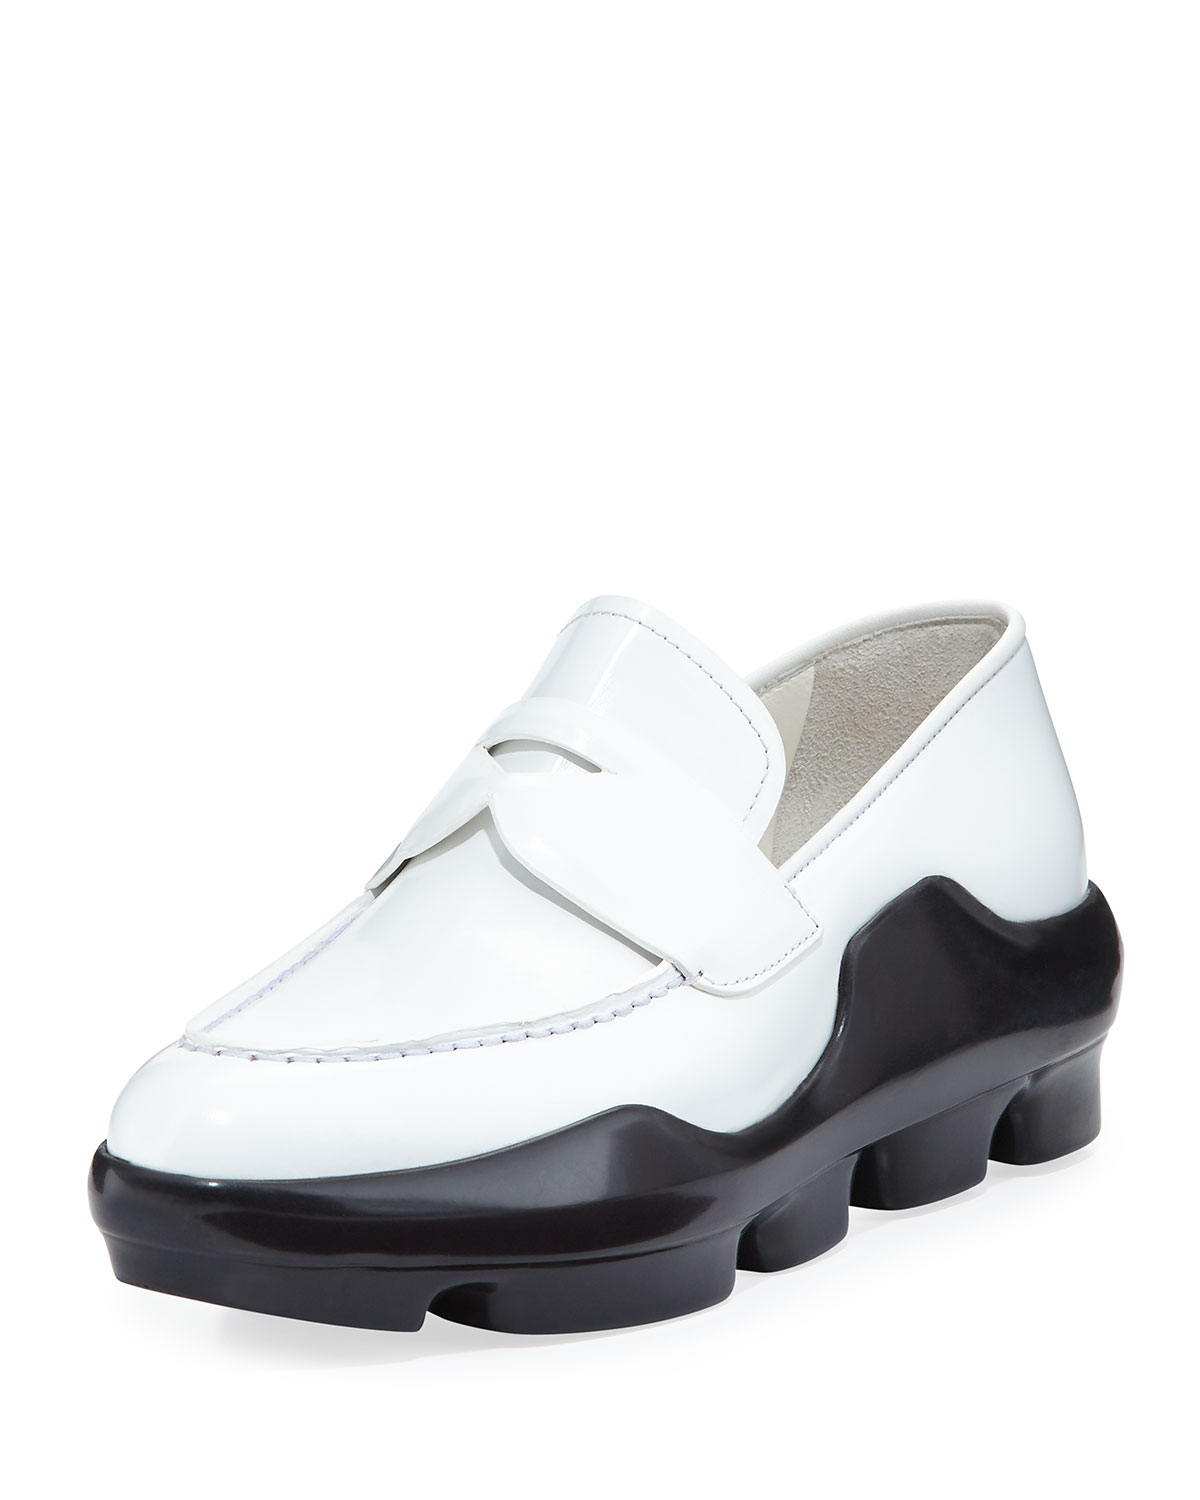 e78171ad504a ... clearance lyst prada leather sneaker style loafer in white for men  feab4 c703f